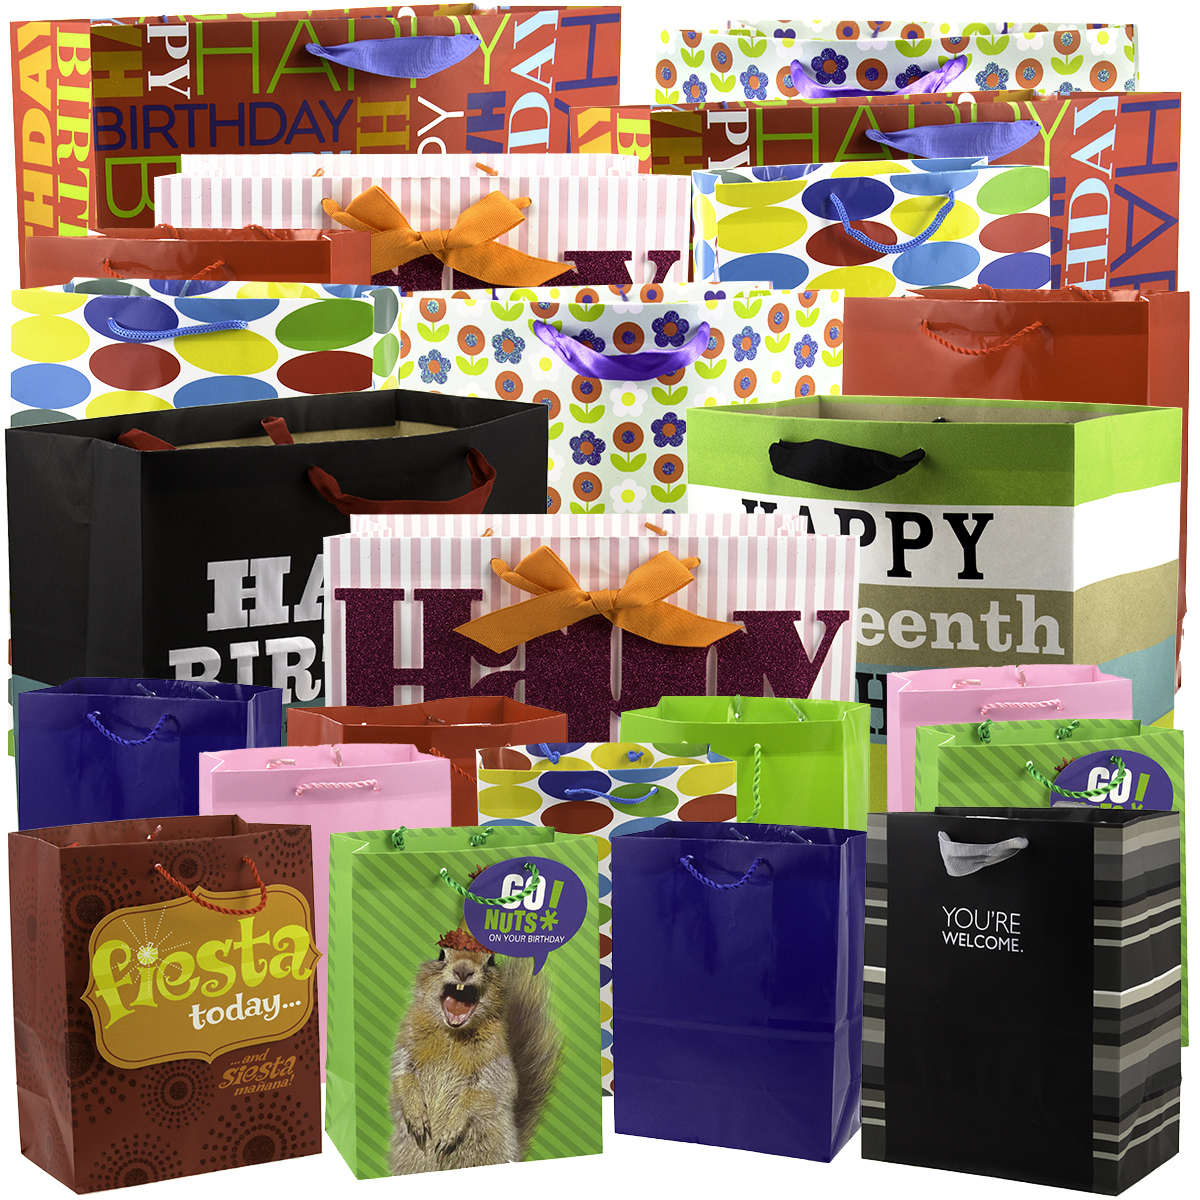 25 Pack Hallmark Gift Wrap Bags Birthday Present Holiday Party Favor Sacks Bulk Lot Assorted Sizes